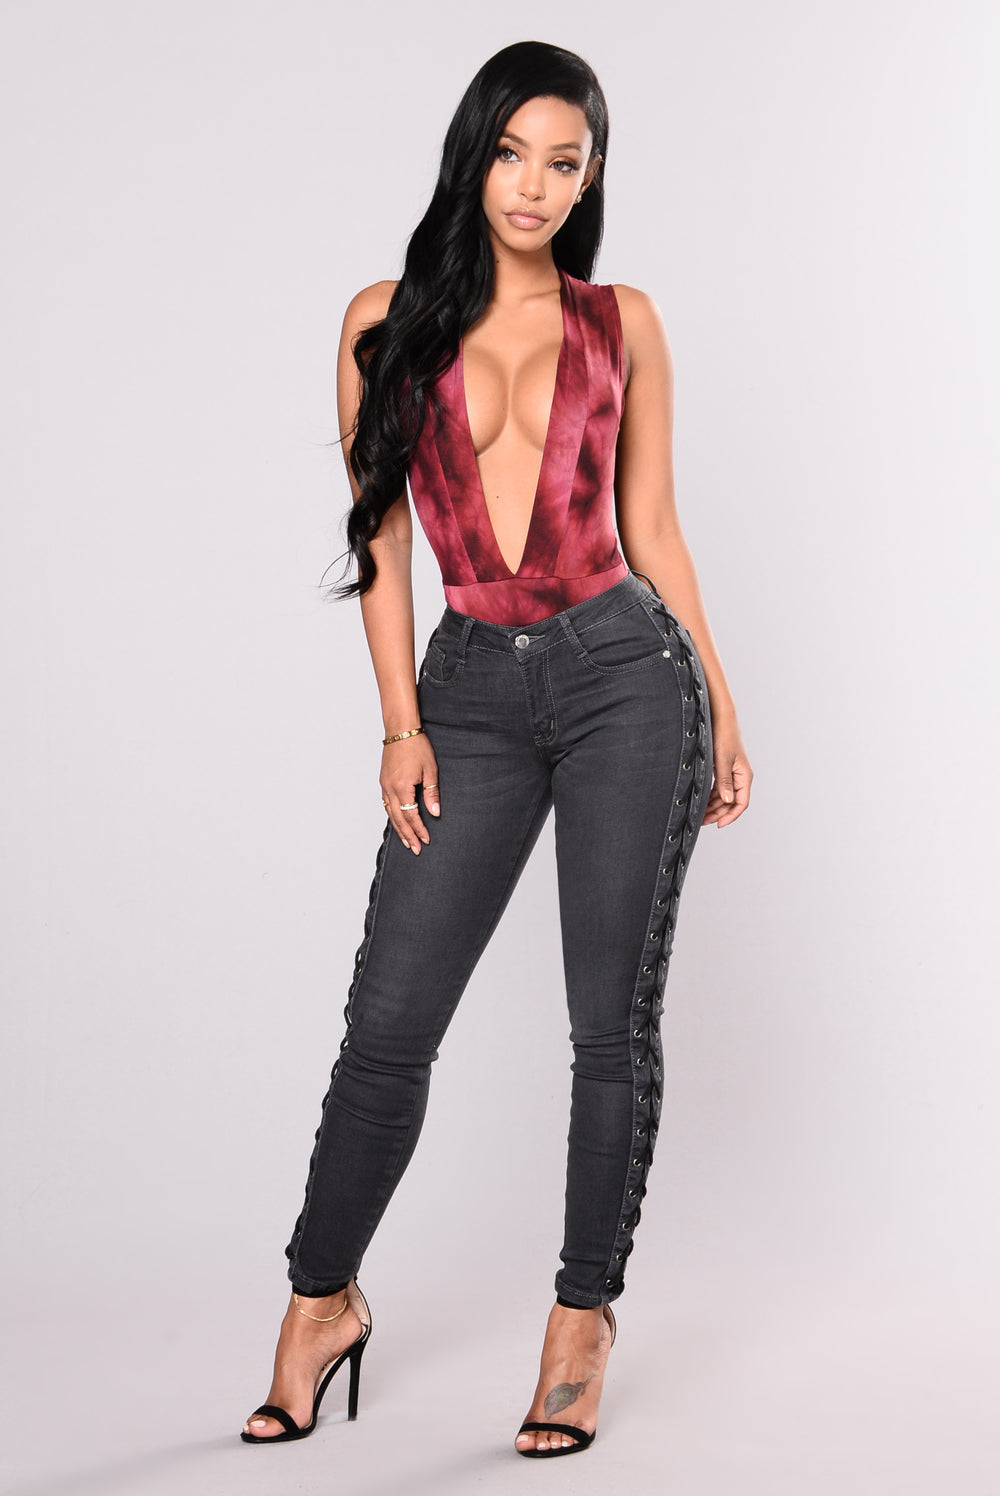 Miss Understood Lace Up Jeans - Grey